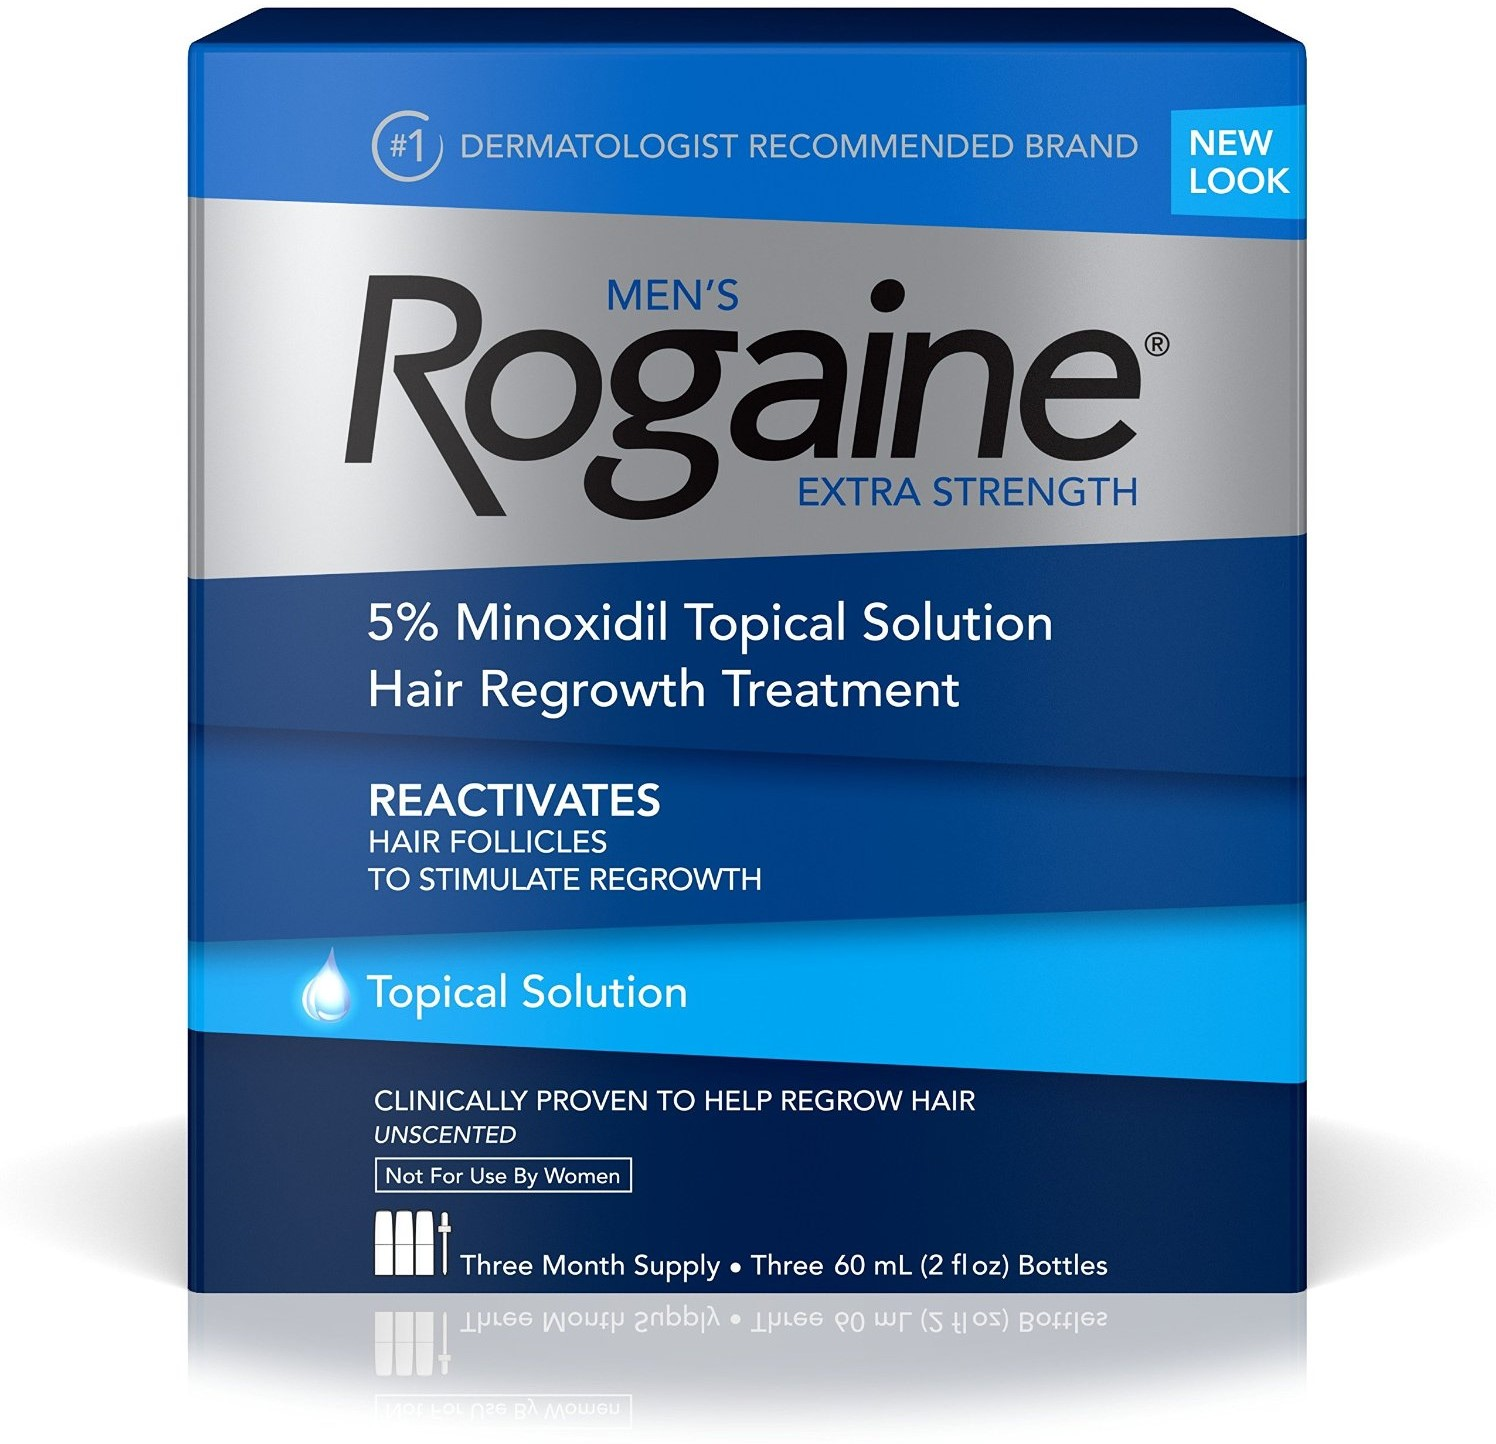 6 Pack - Rogaine Men's Extra Strength 3 Month Supply, Unscented 6 oz